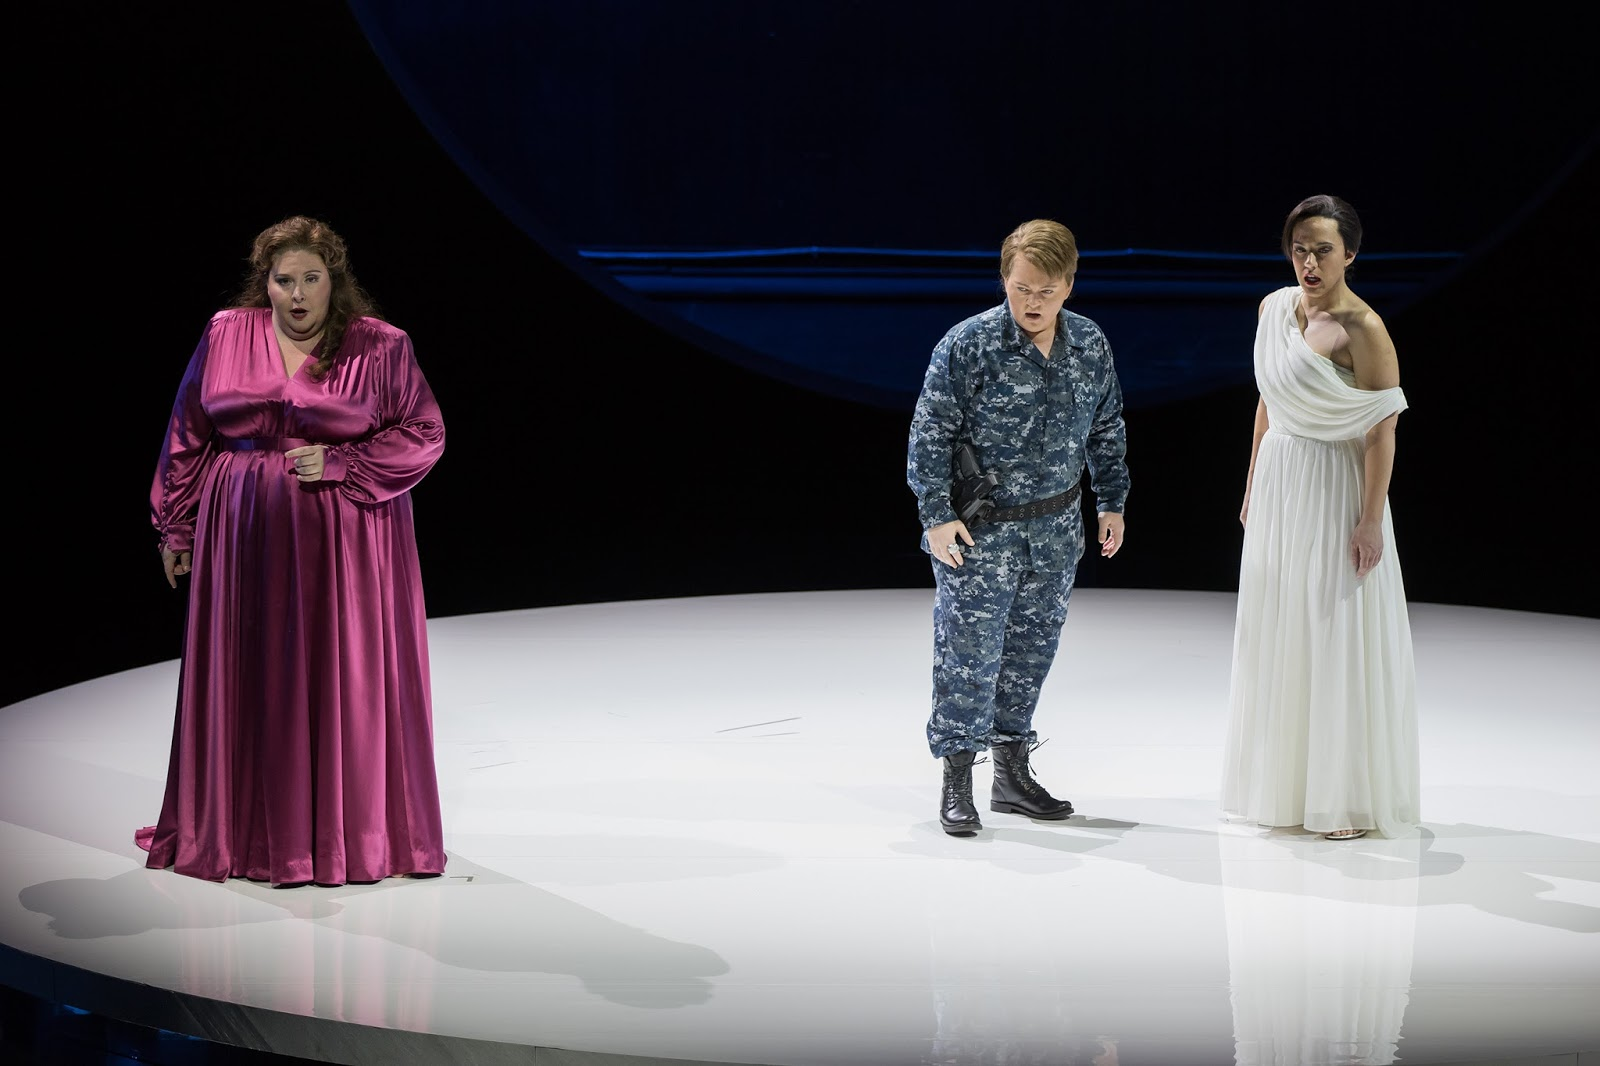 IN PERFORMANCE: (from left to right) soprano ANGELA MEADE in the title rôle and mezzo-sopranos ELIZABETH DESHONG and DANIELA MACK as Ruggiero and Bradamante in Washington National Opera's production of Georg Friedrich Händel's ALCINA, November 2017 [Photo by Scott Suchman, © by Washington National Opera]